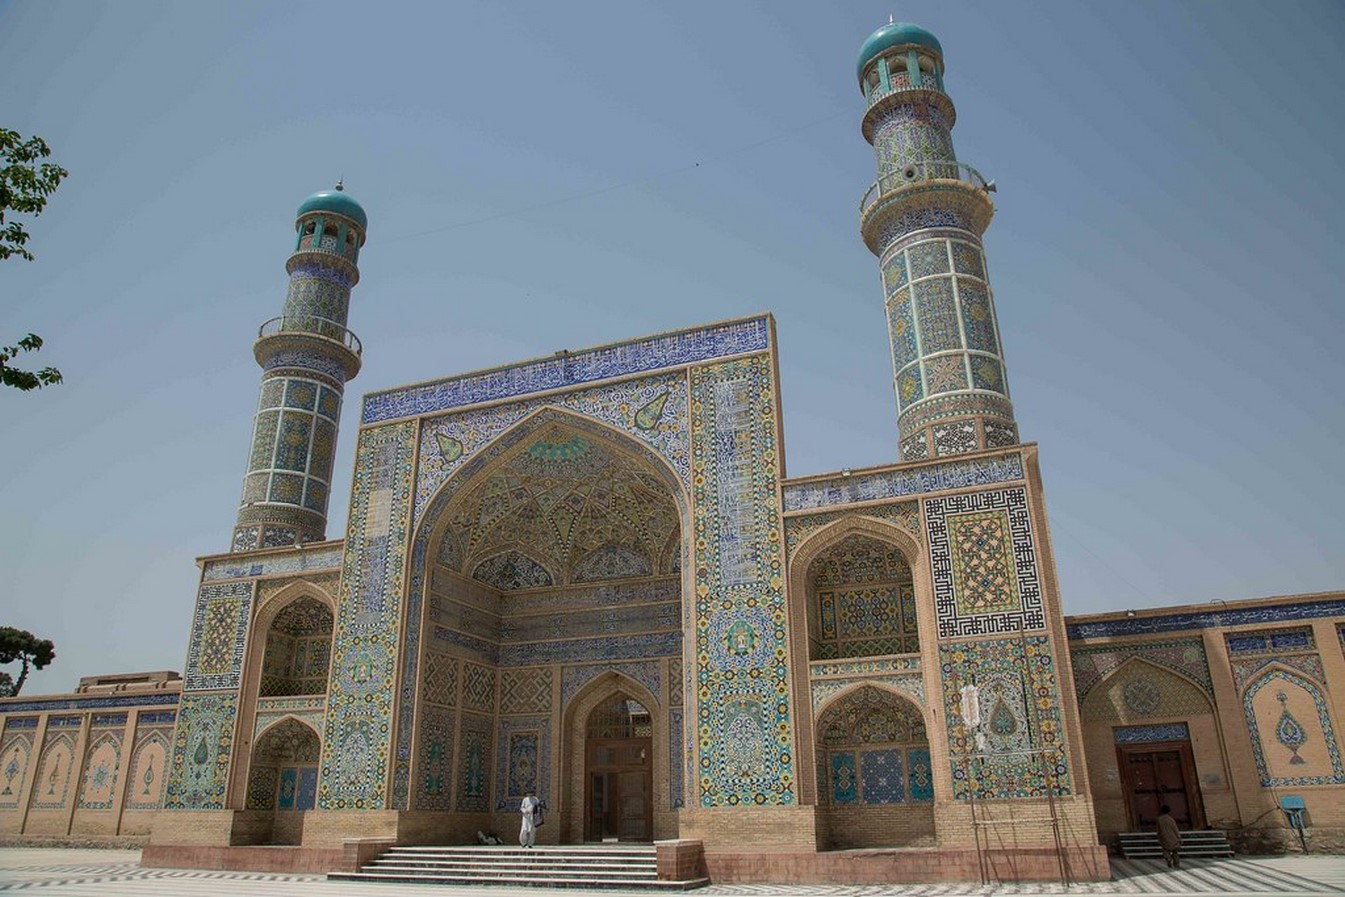 Friday Mosque/Great Mosque of Herat - Sheet2